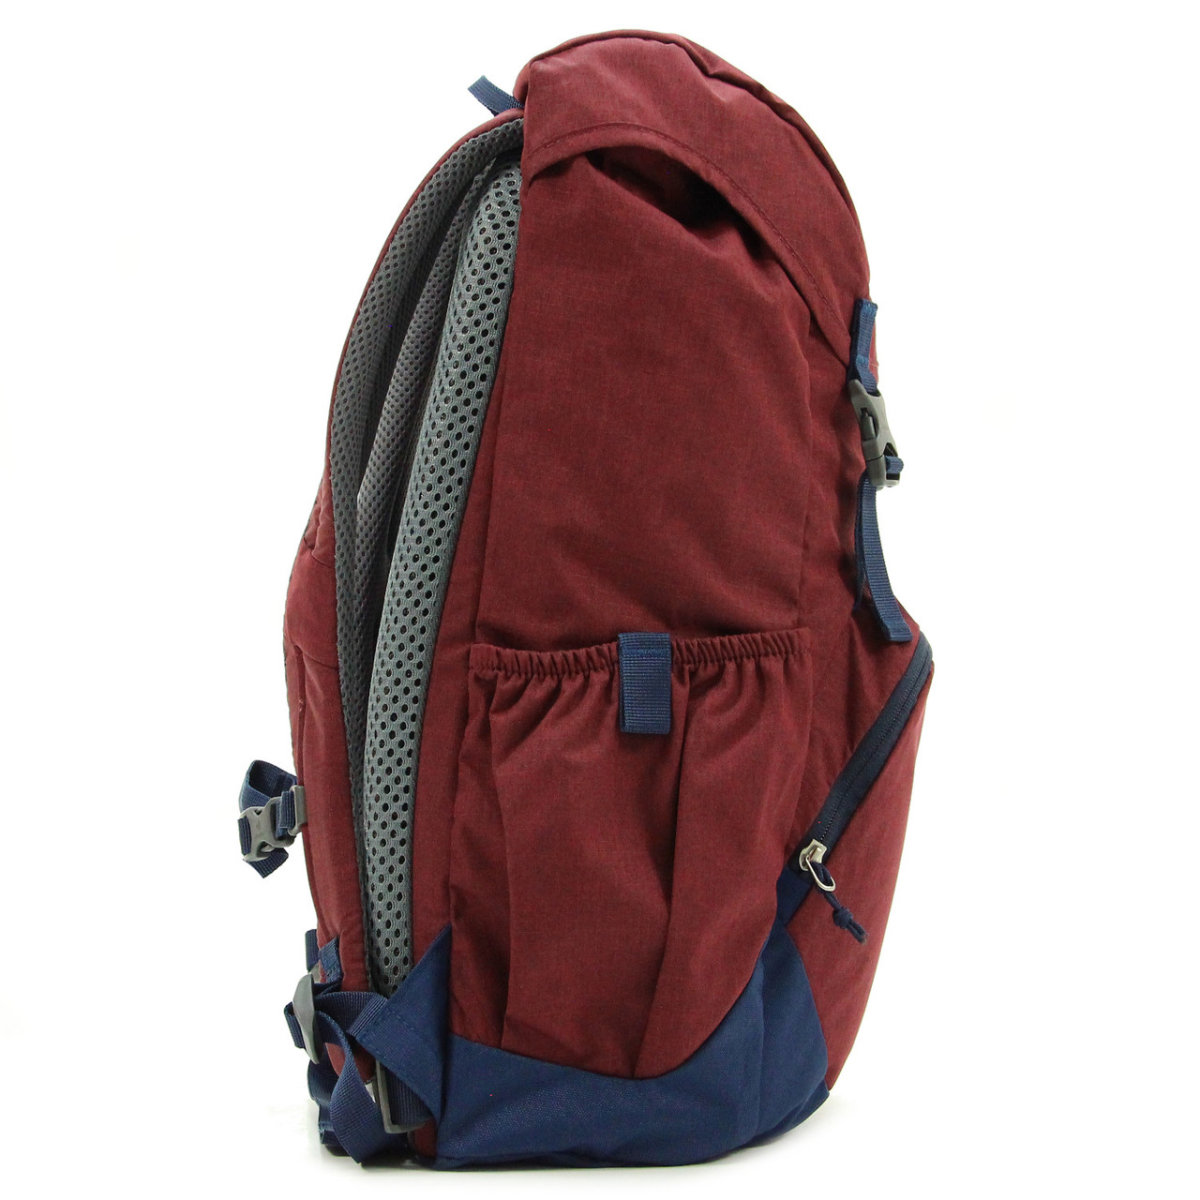 Рюкзак Deuter Walker 20 petrol-arctic (3325) Walker 20 4 3810617 3325